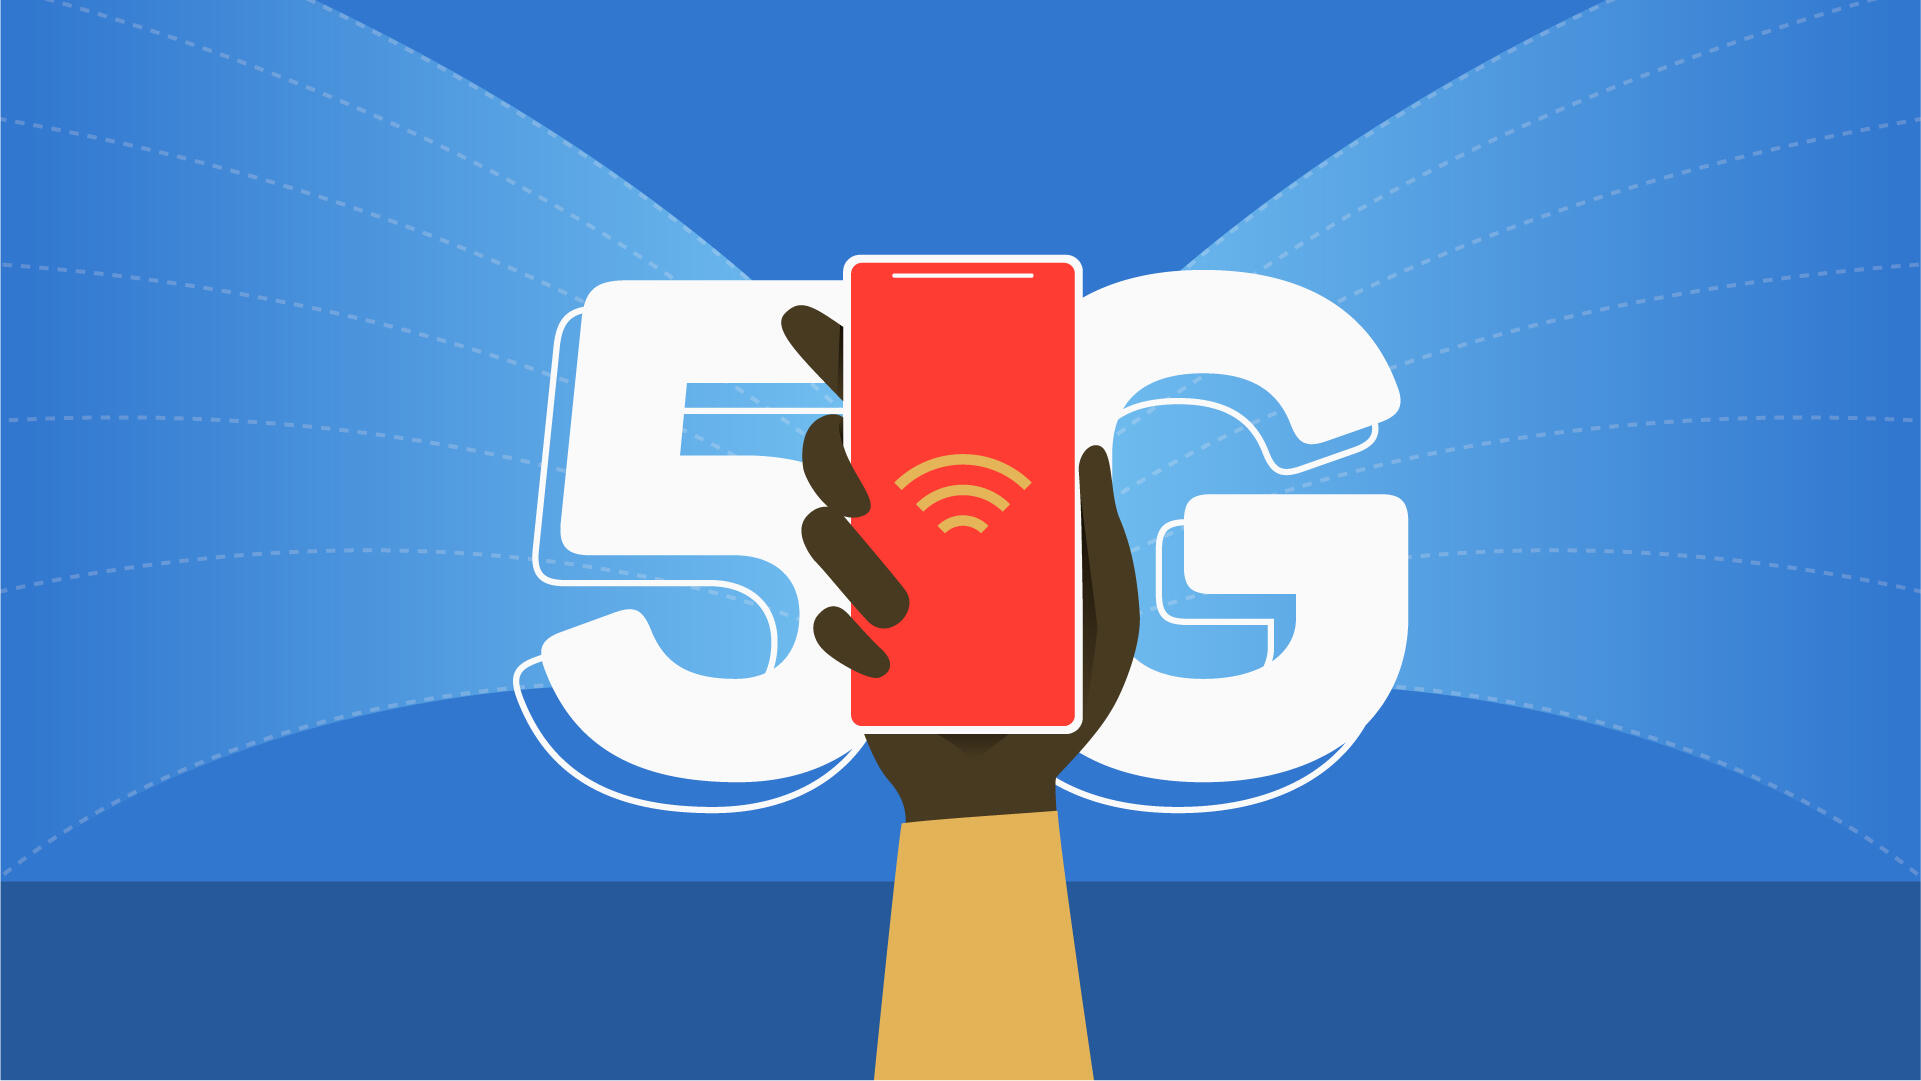 5g-stories-illustrations-5g-various-generic-1